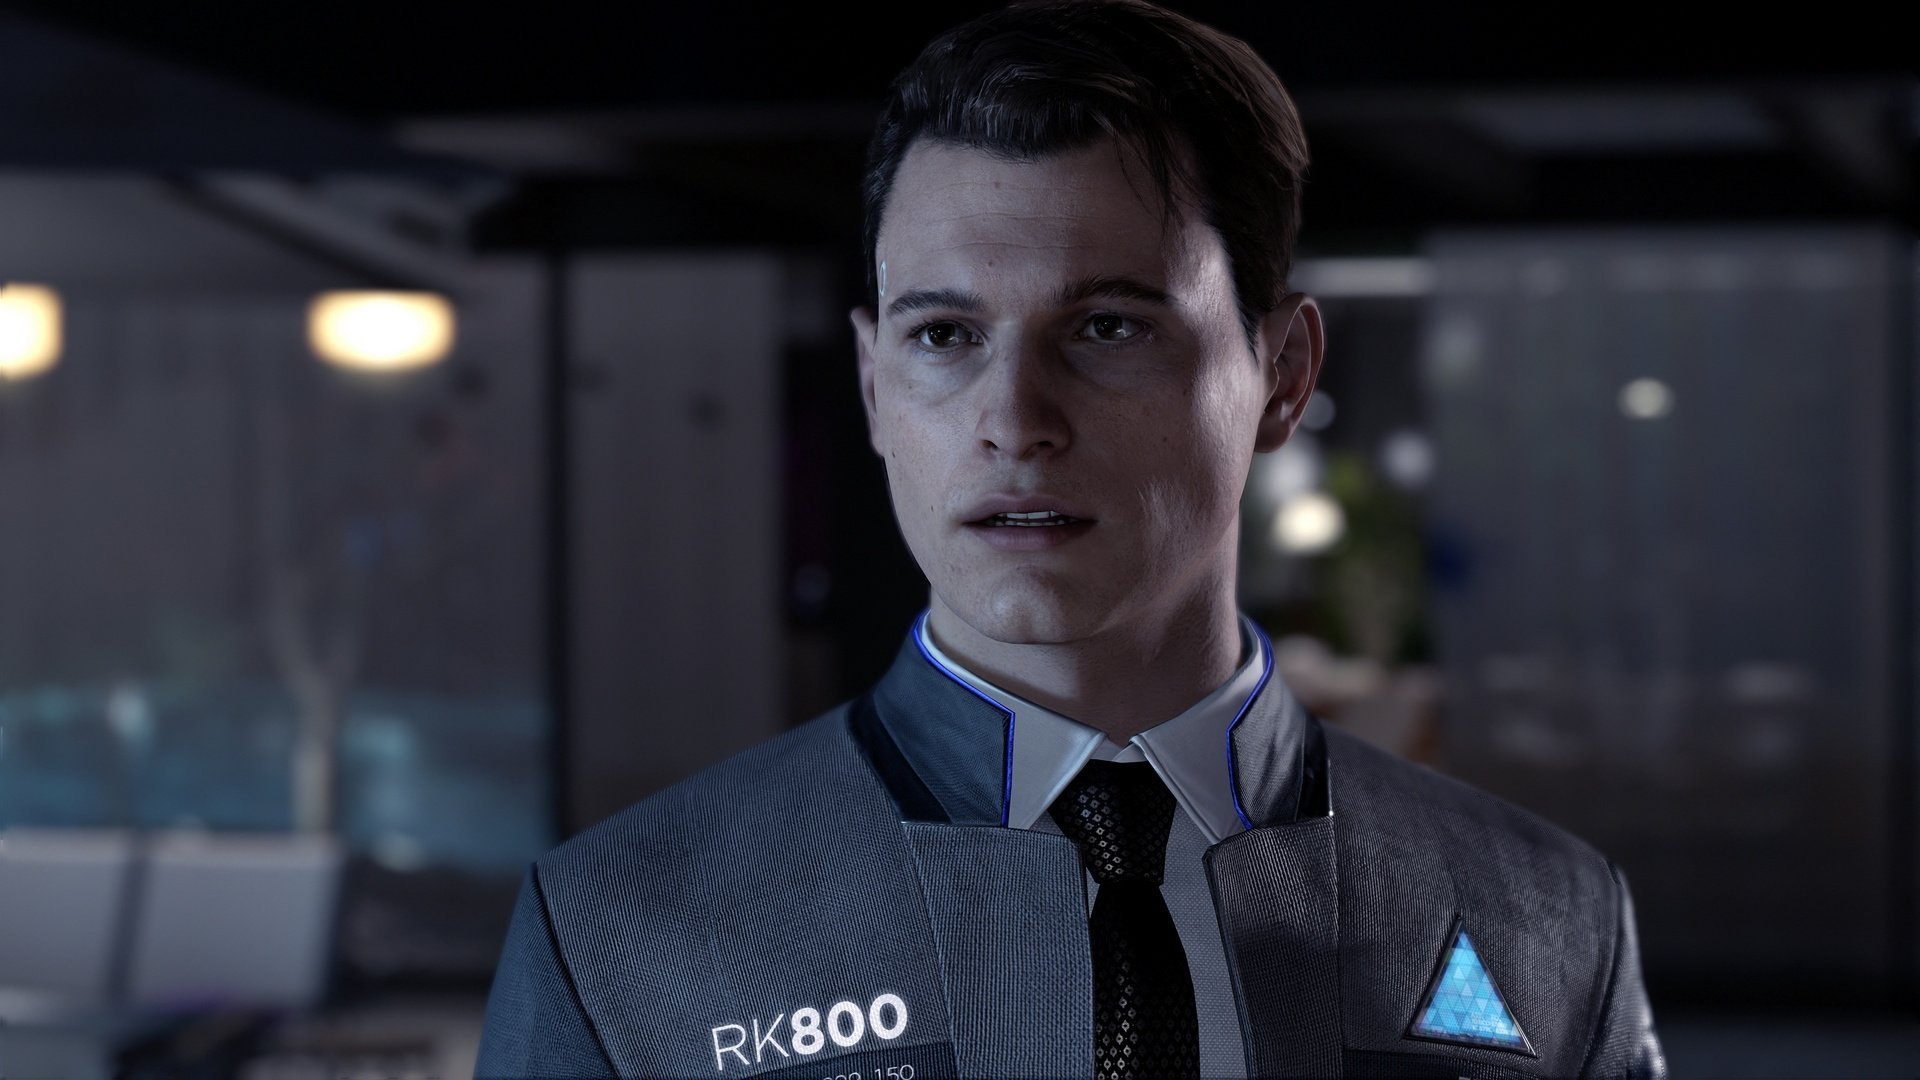 Connor Detroit Become Human Wallpaper: Detroit: Become Human (PS4 / PlayStation 4) News, Reviews